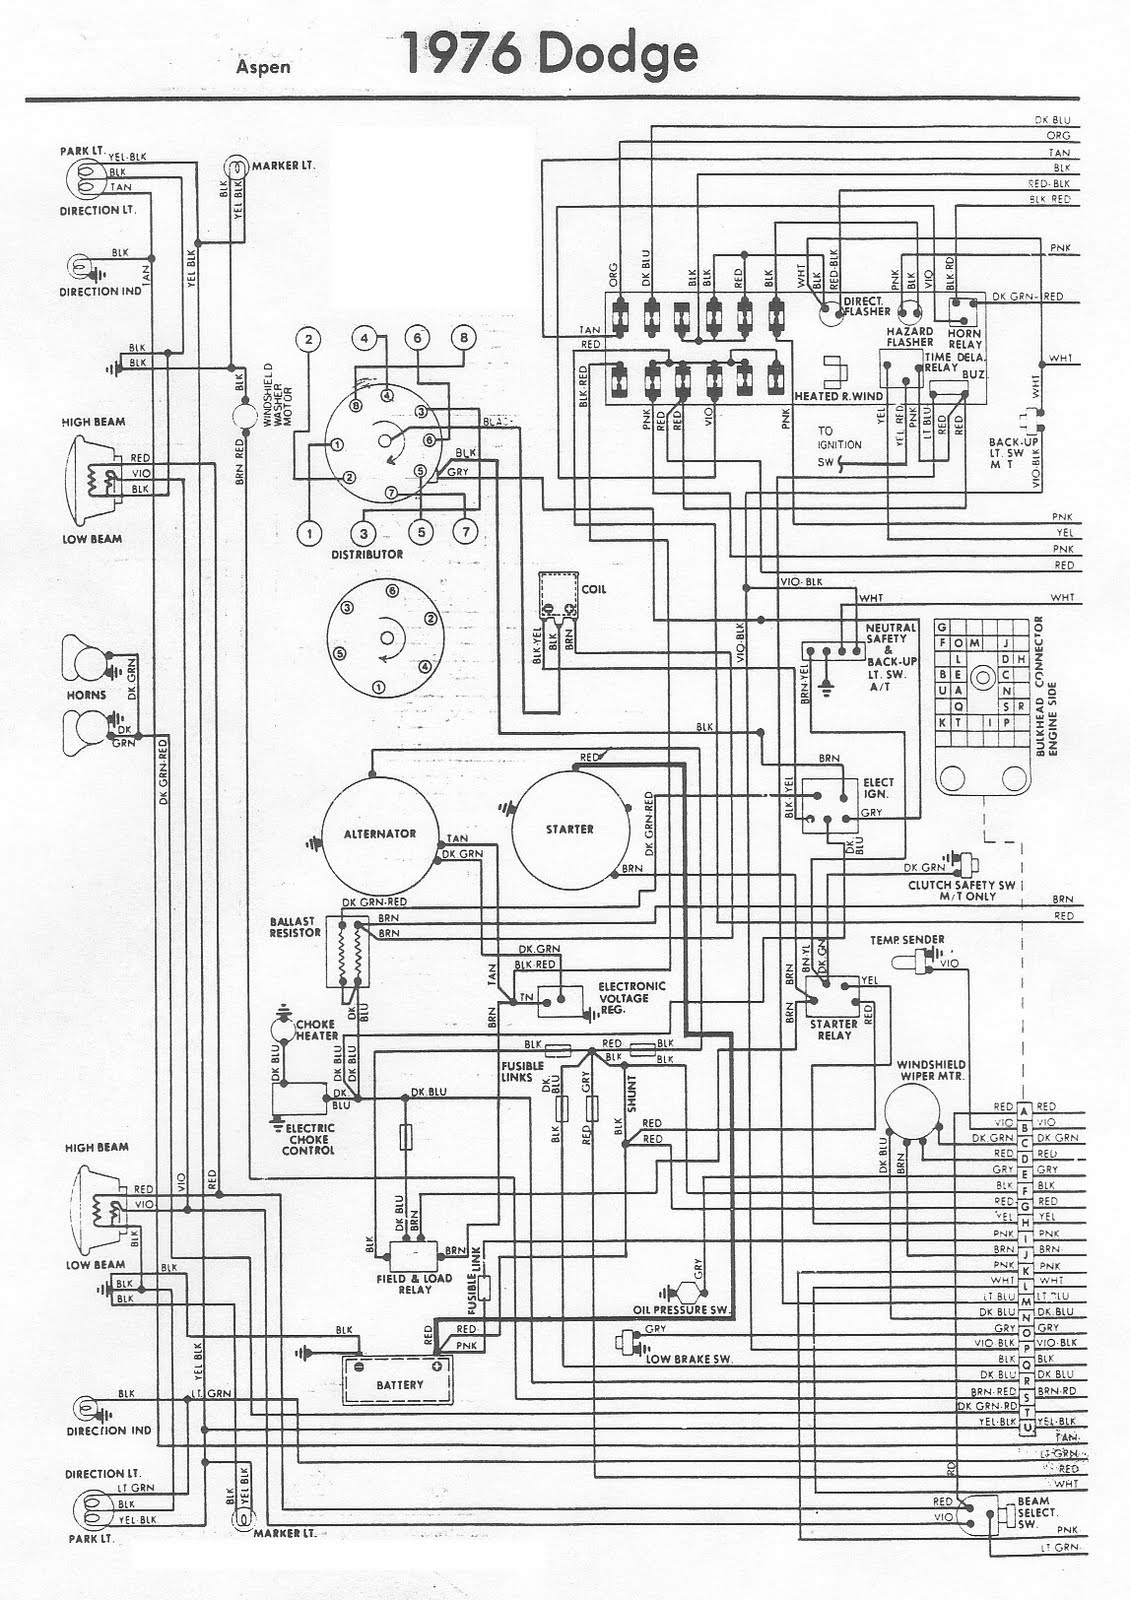 medium resolution of 2007 chrysler aspen engine diagram wiring diagram image chrysler aspen wiring diagram